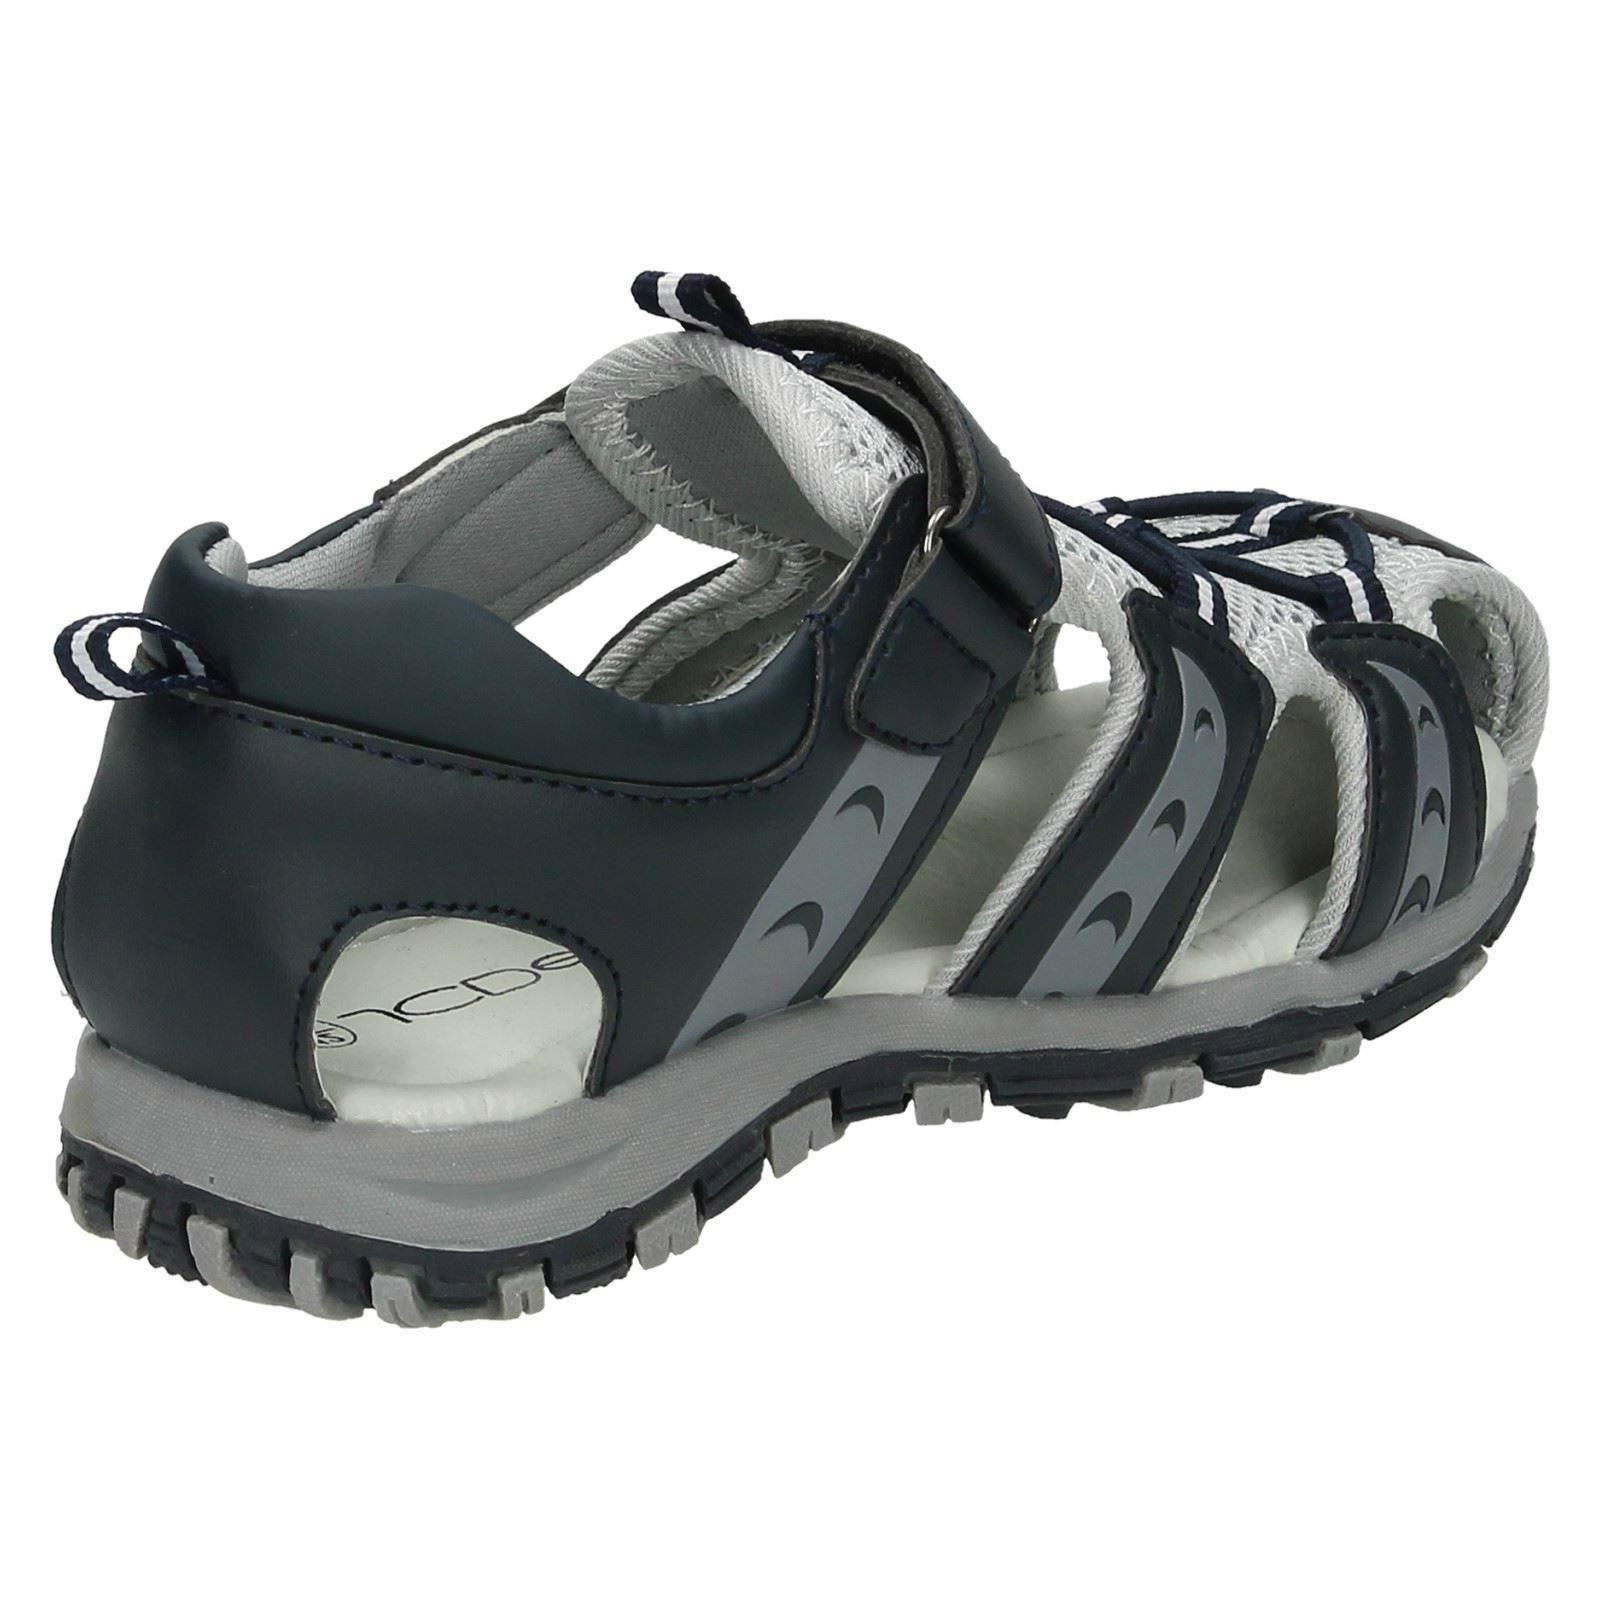 Boys Jcdees Casual Sporty Sandals *n0040* Kids' Clothes, Shoes & Accs.